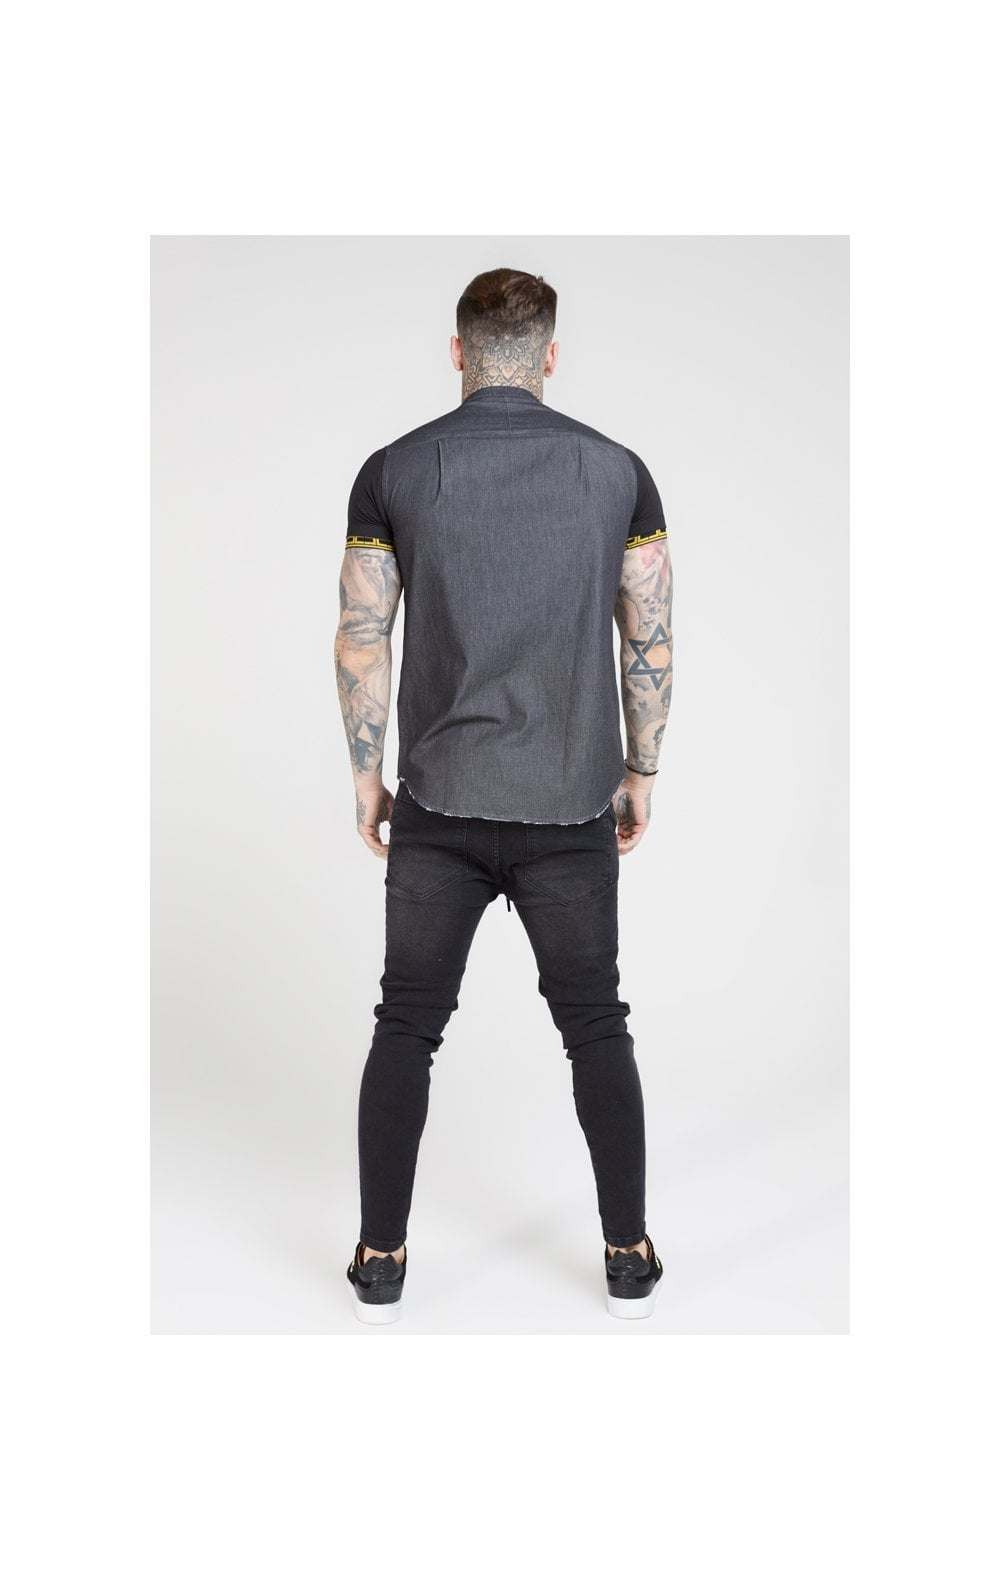 SikSilk S/S Denim Shirt – Black (4)